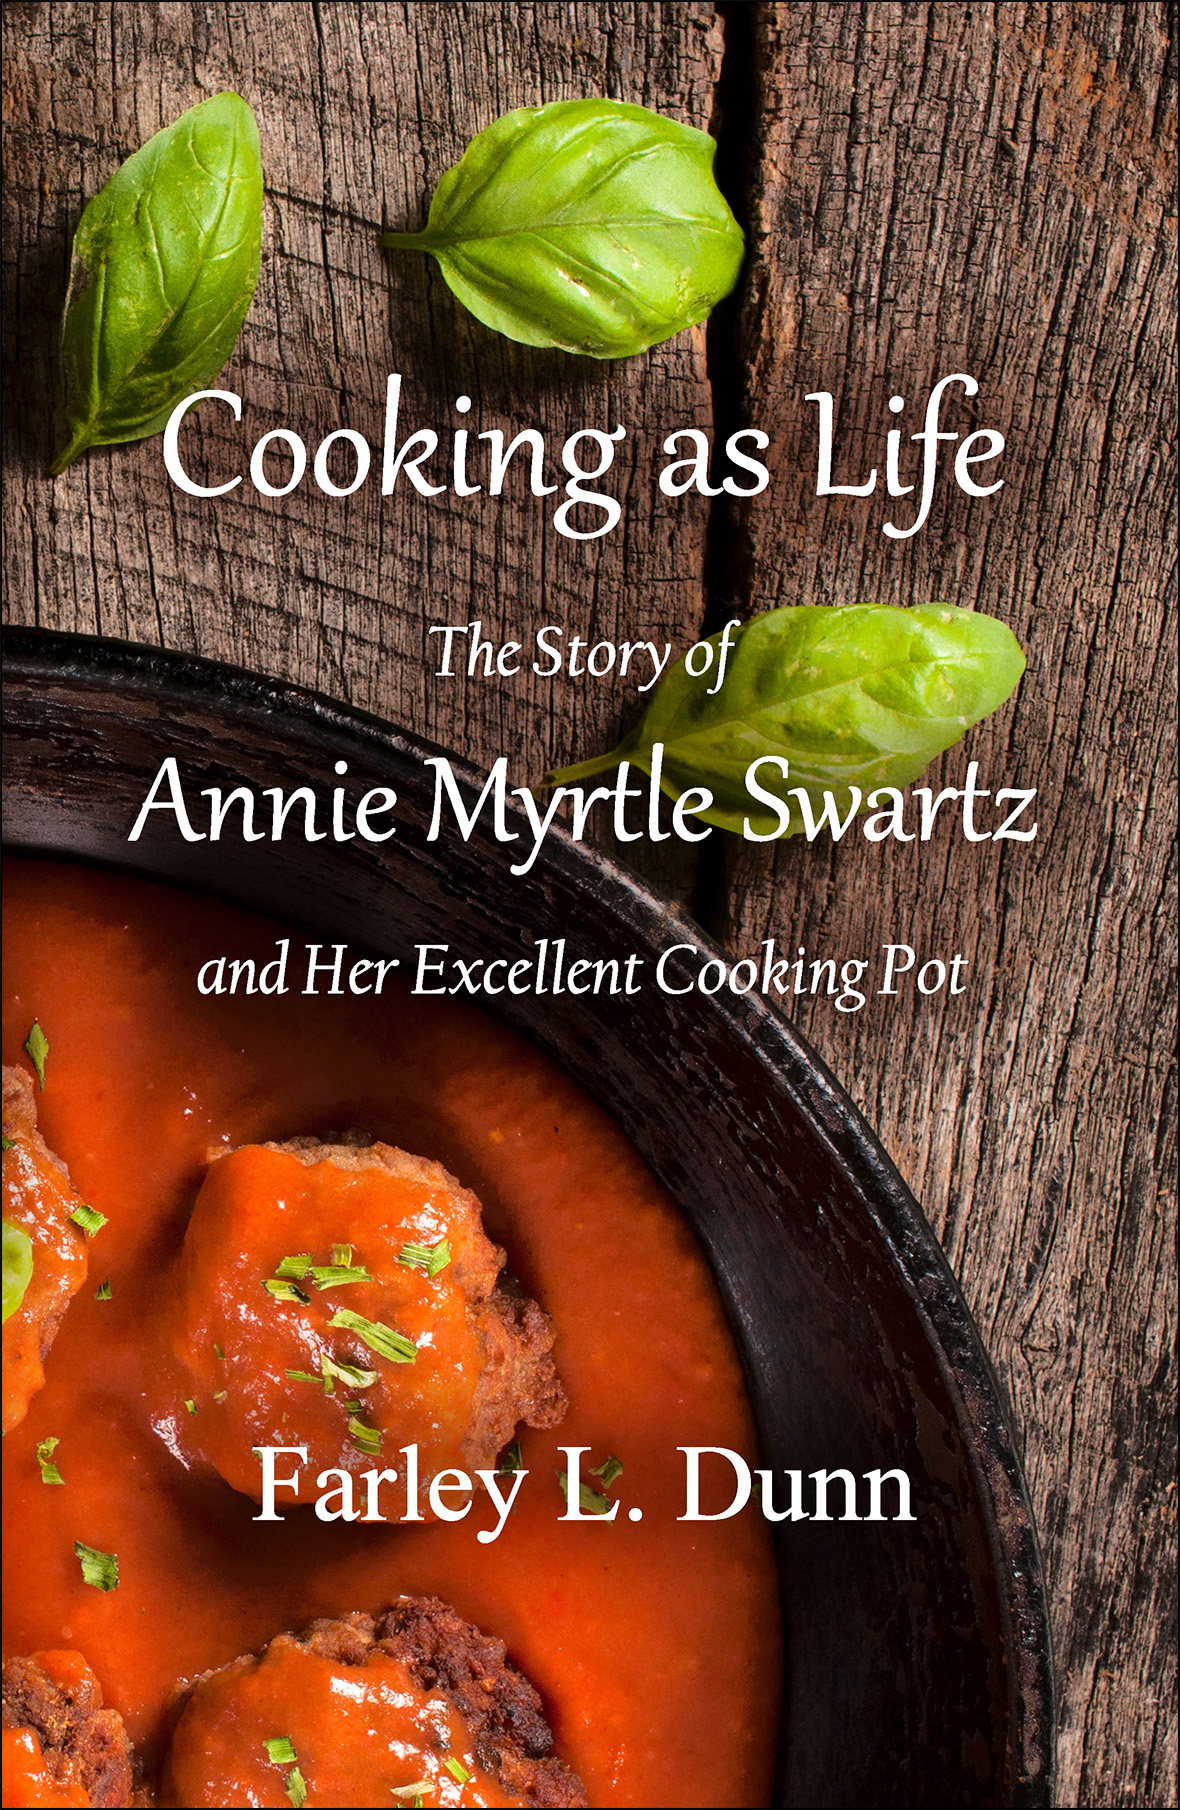 Cooking as Life Cookbook v7 cover Front for web insertion